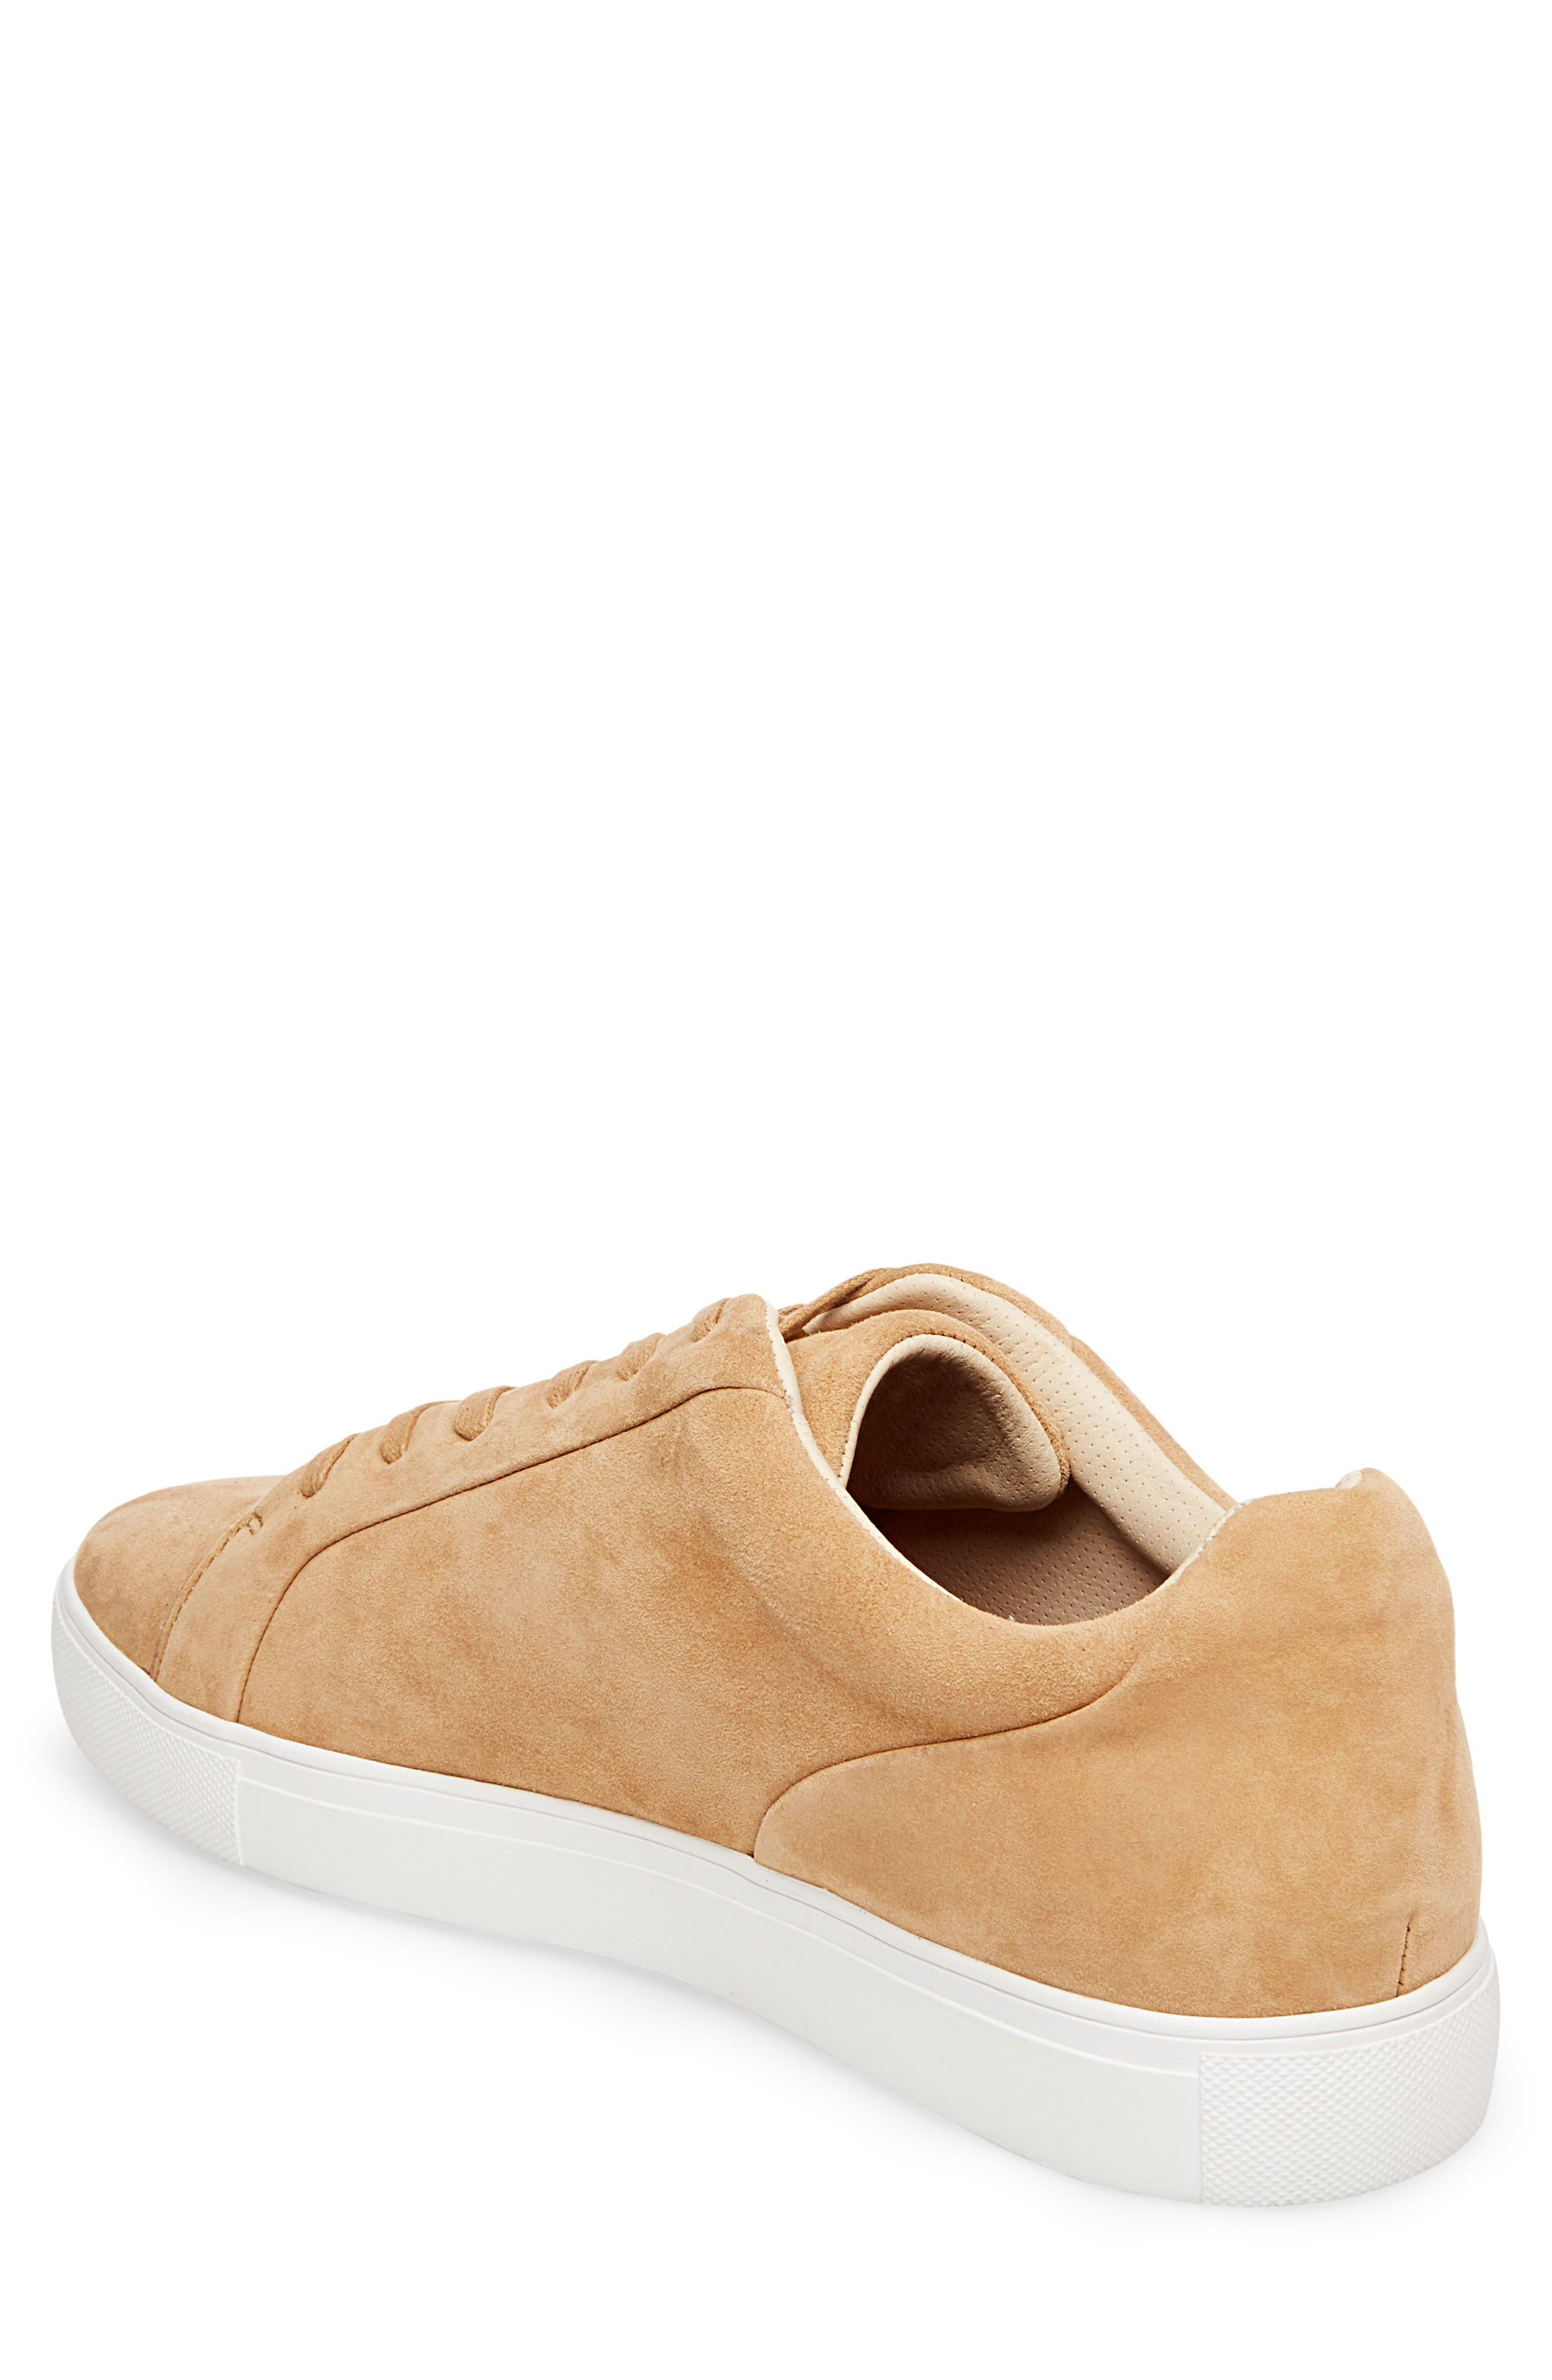 x GQ James Sneaker,                             Alternate thumbnail 2, color,                             Tan Suede